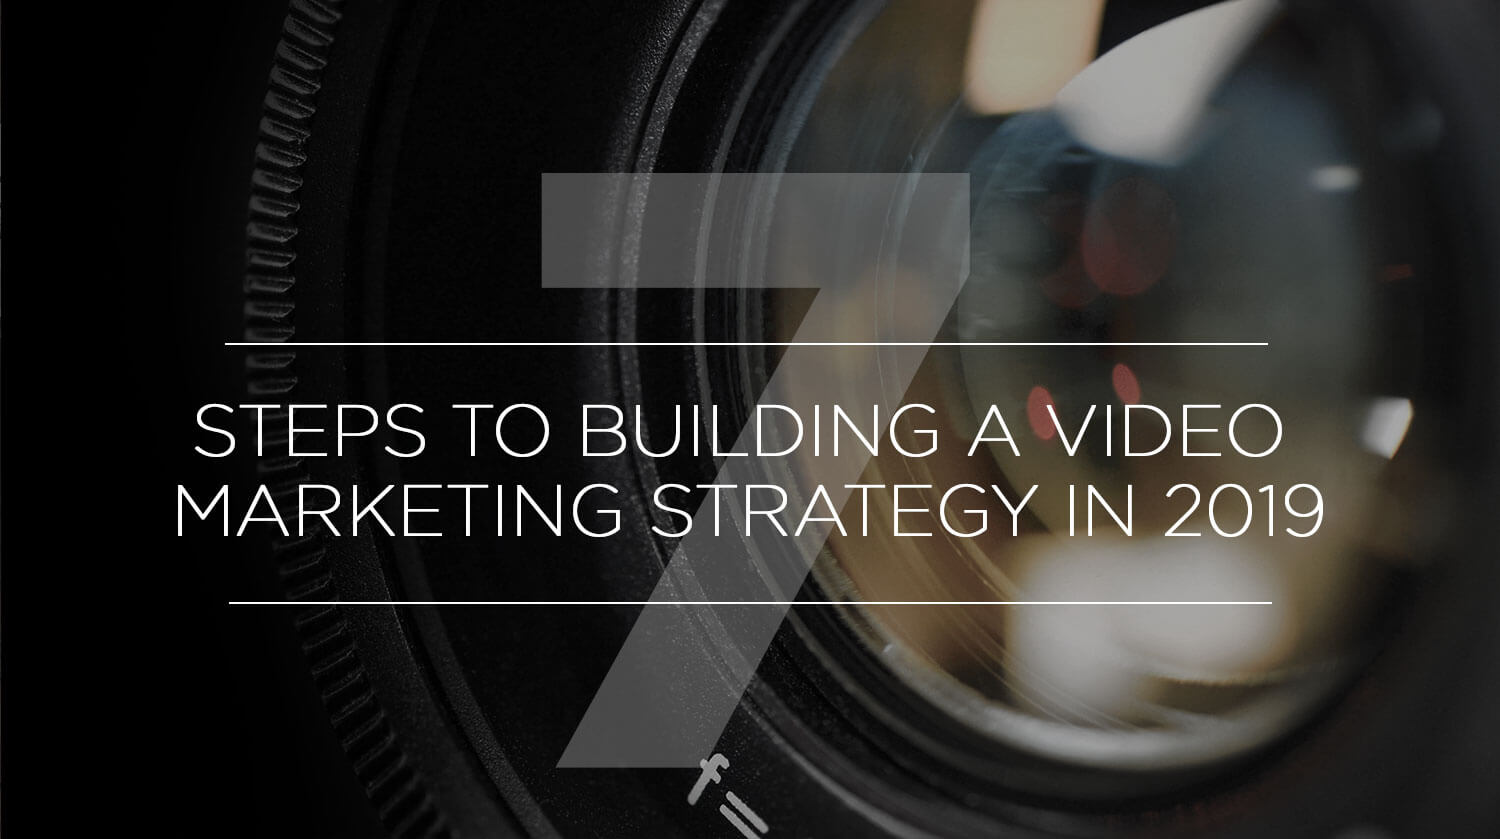 7 Steps to Building a Video Marketing Strategy in 2019